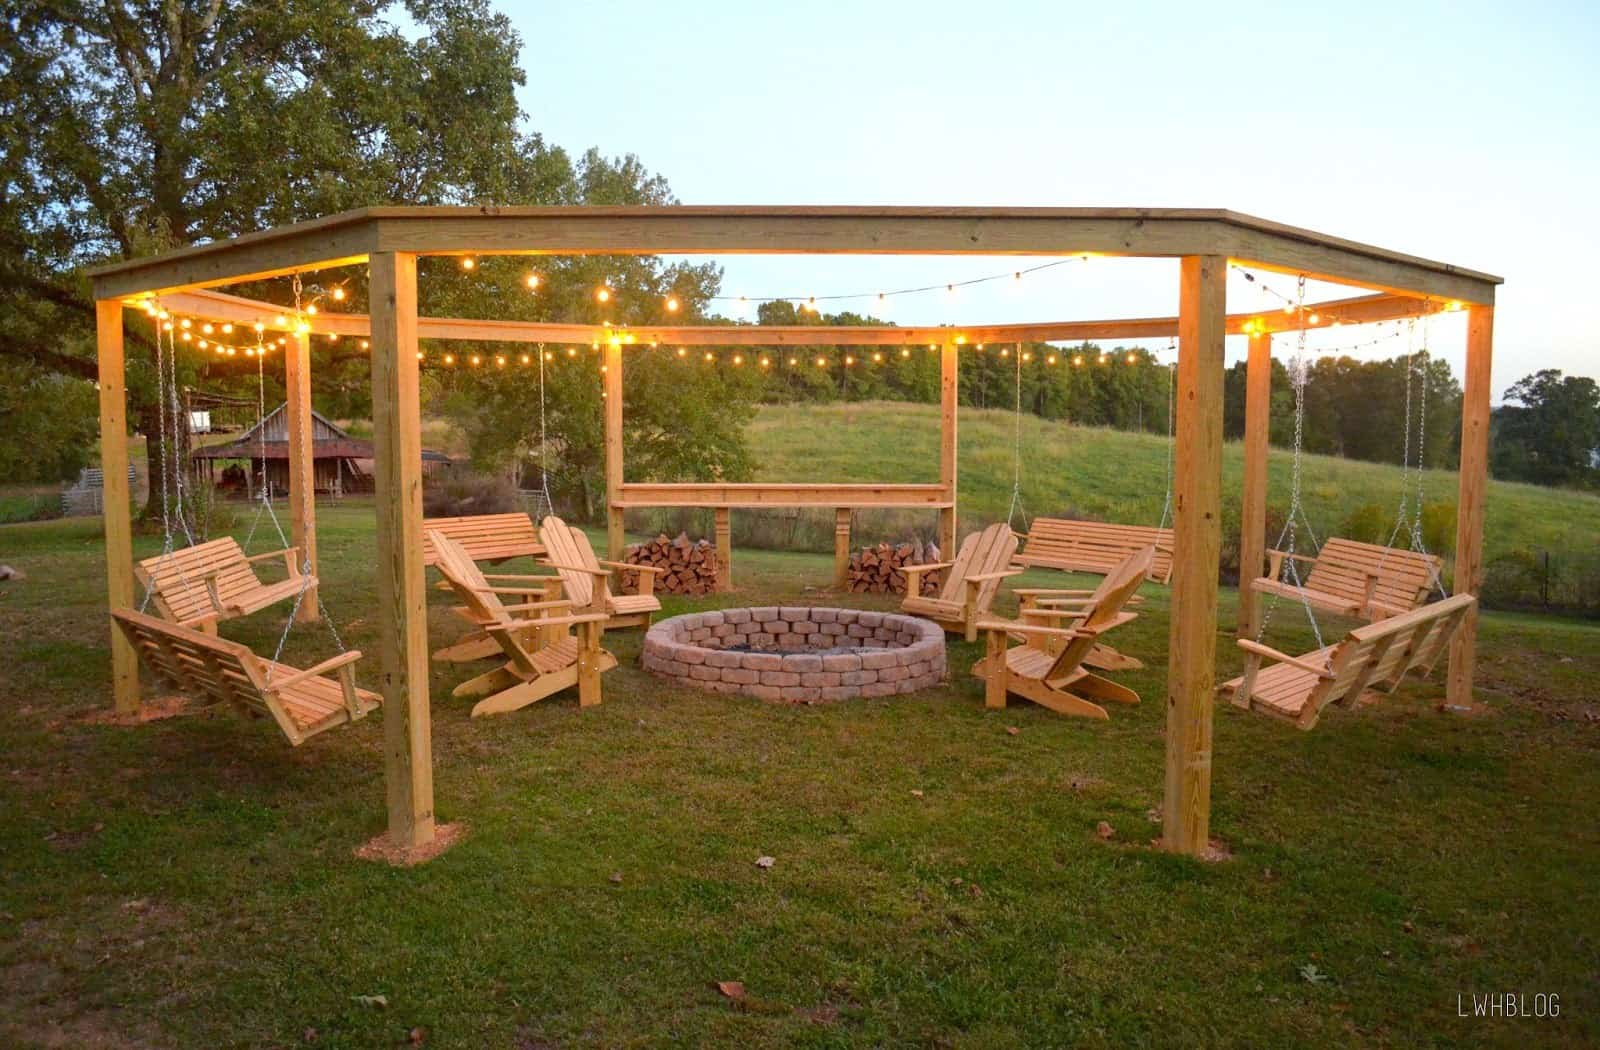 Open top pergola with a fire pit and swing seats